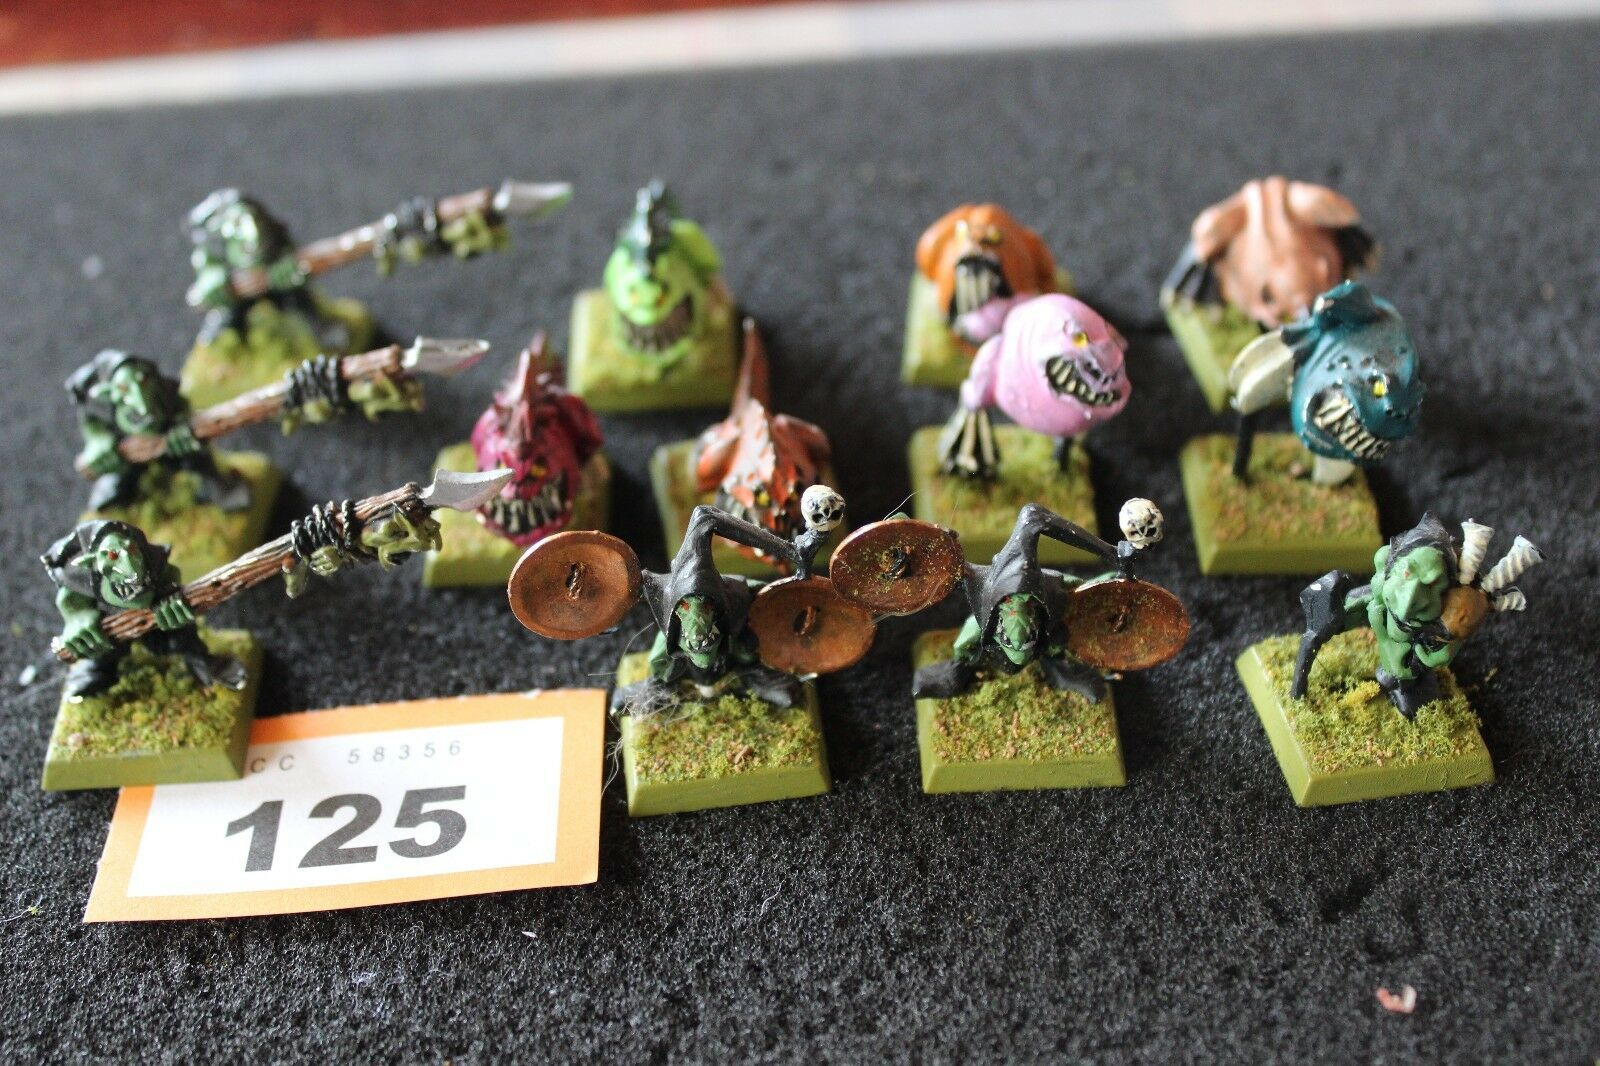 Spel arbetarhop Warhammer Night Goblins Squig Herder Teams Metal Målade figurer